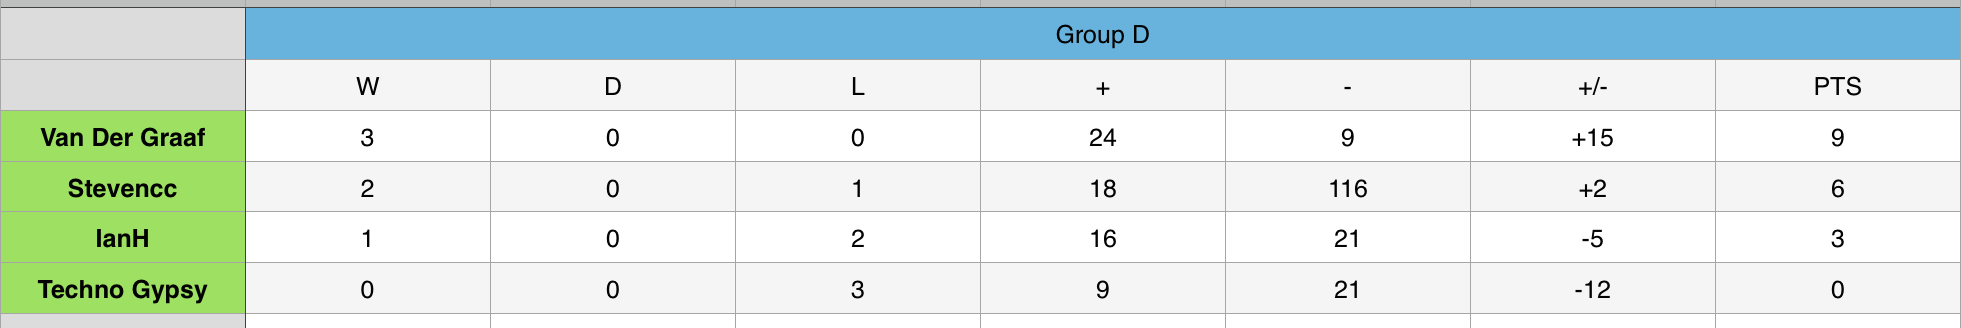 Group D 3.png